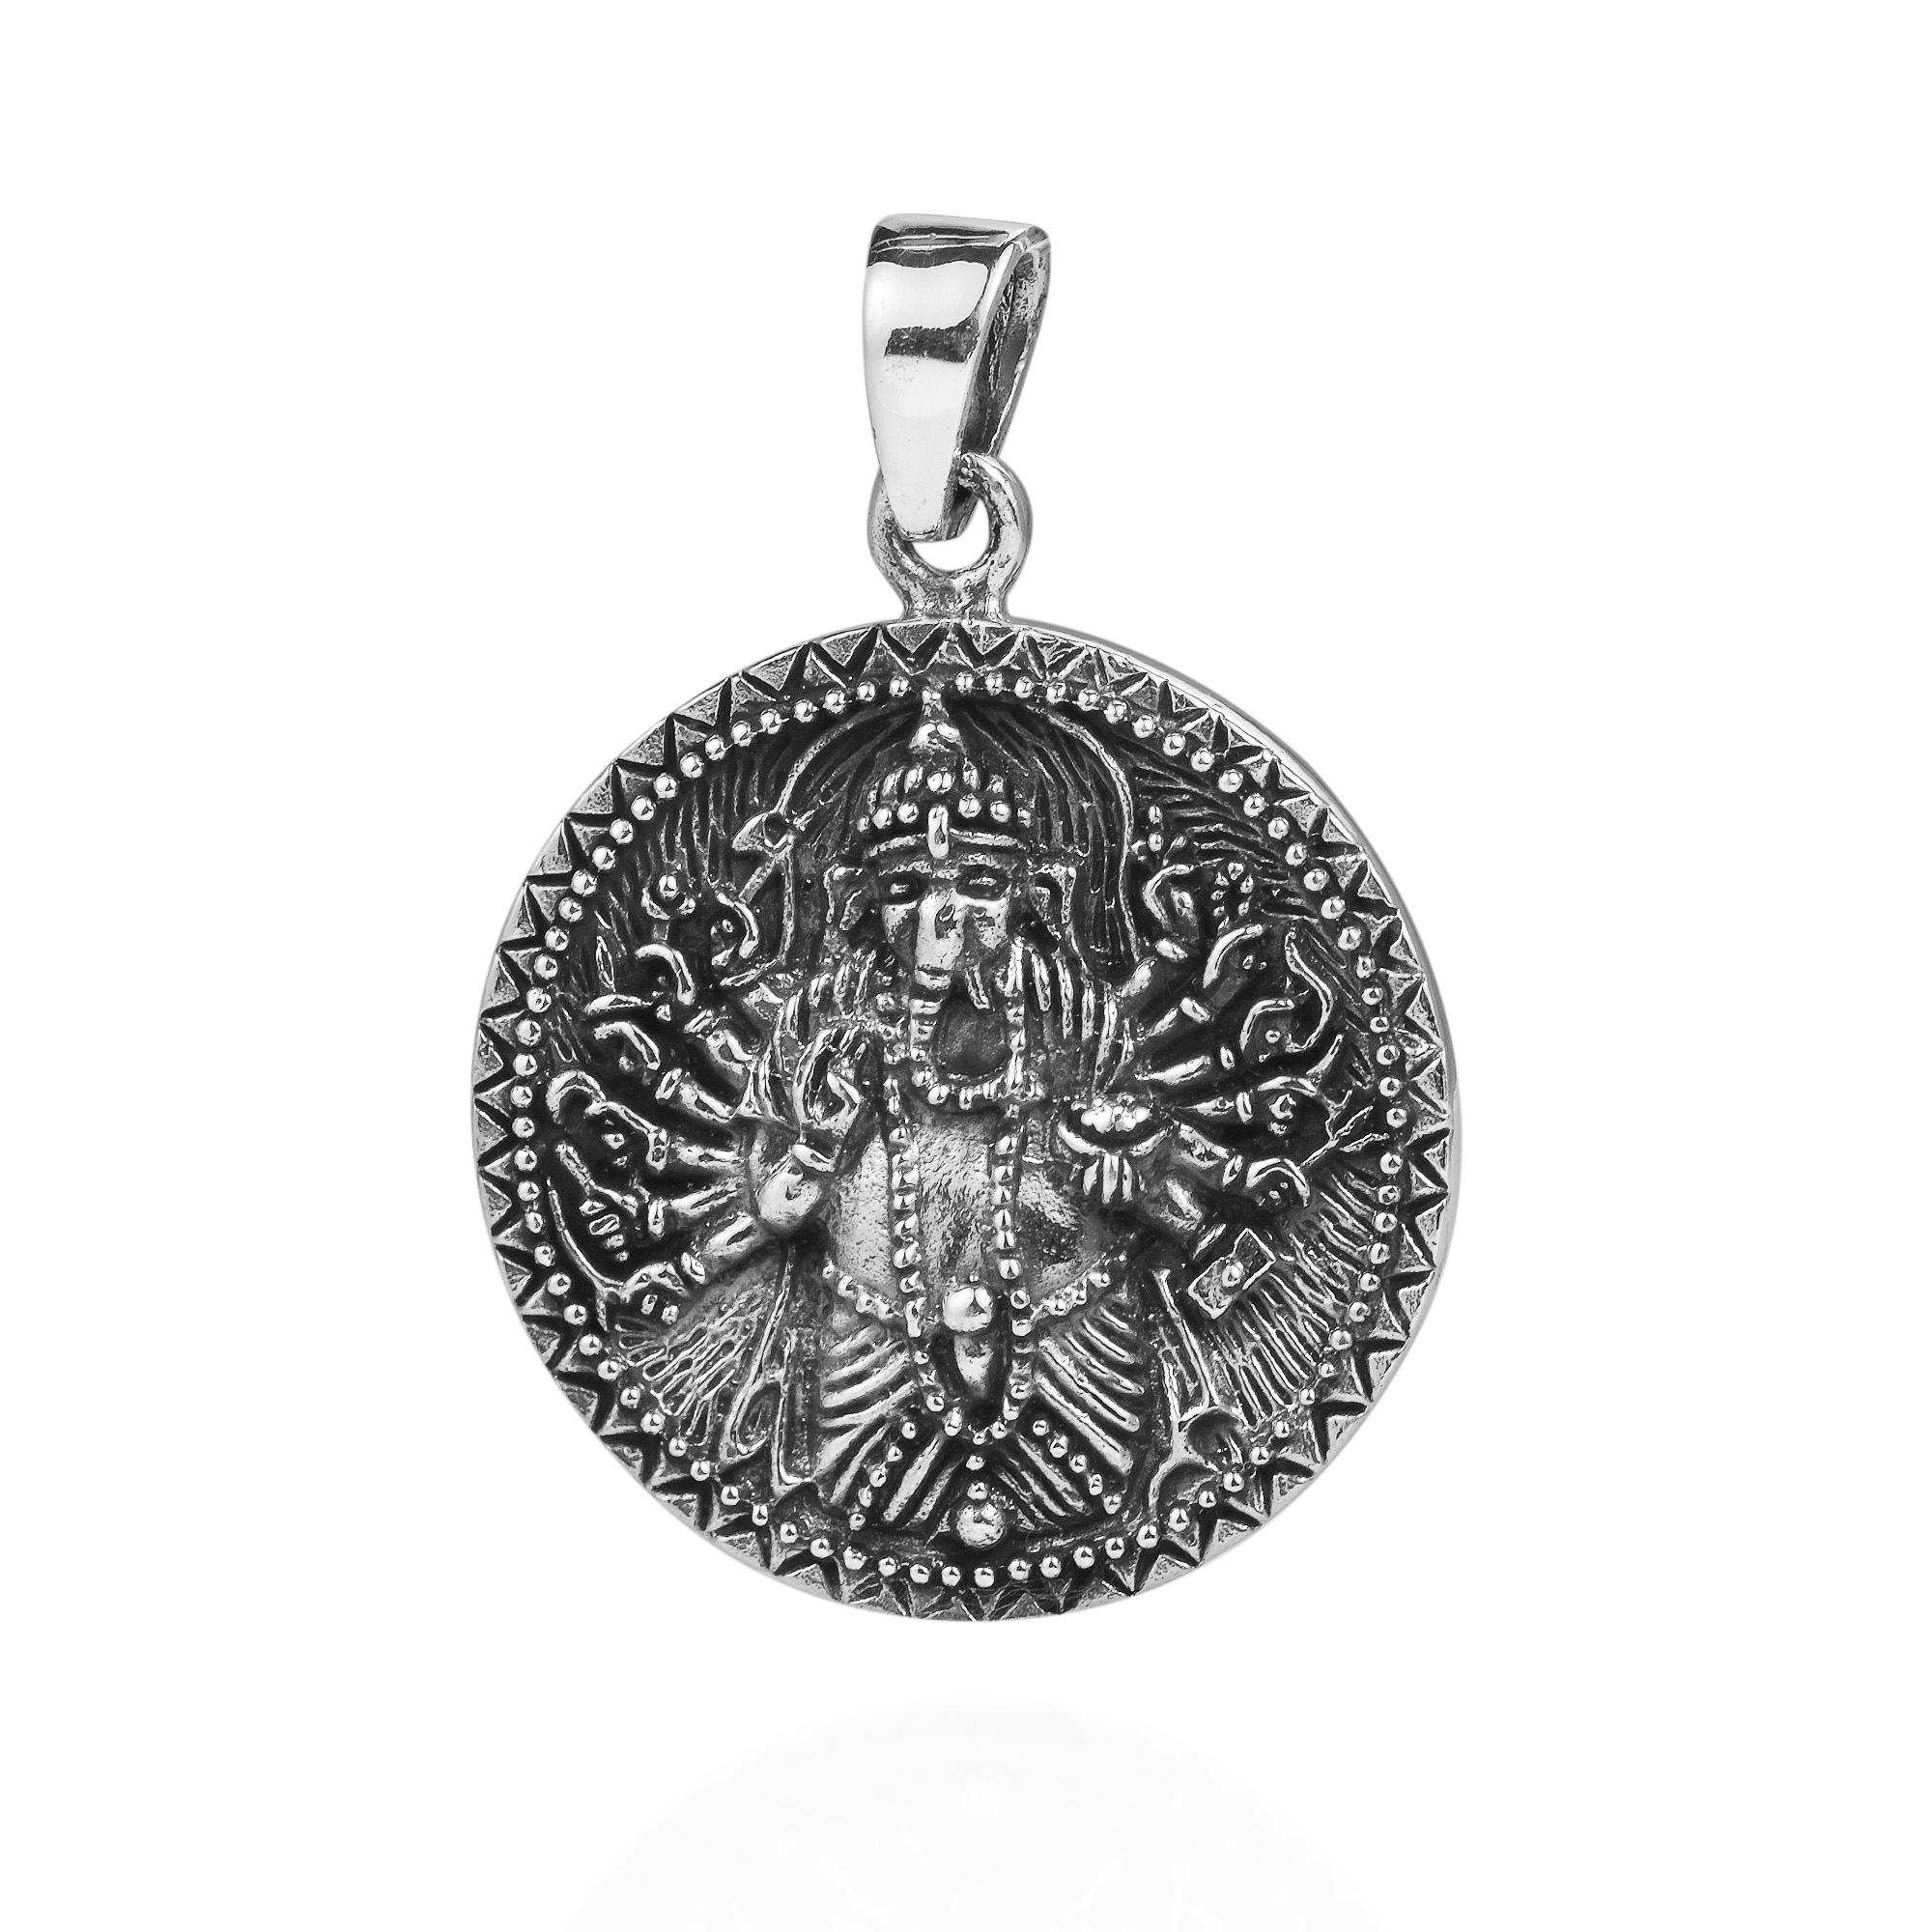 Unique Ganesha Aum Om Symbol Double Sided Sterling Silver Pendant